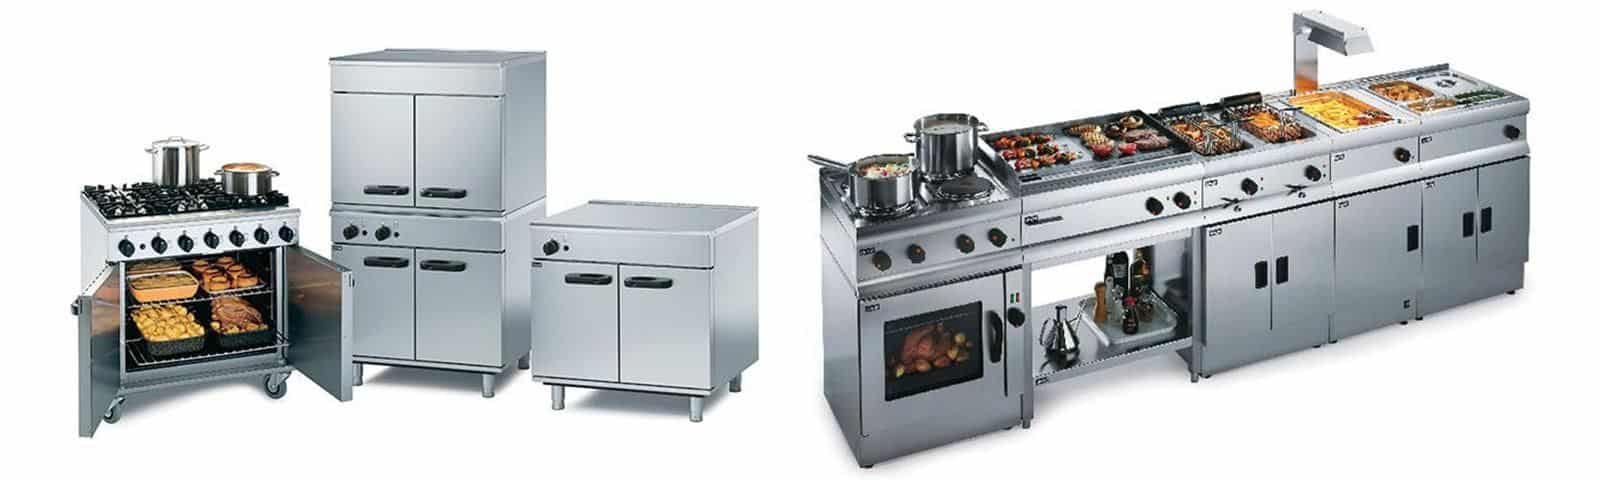 Commercial Appliance Repair In San Marino